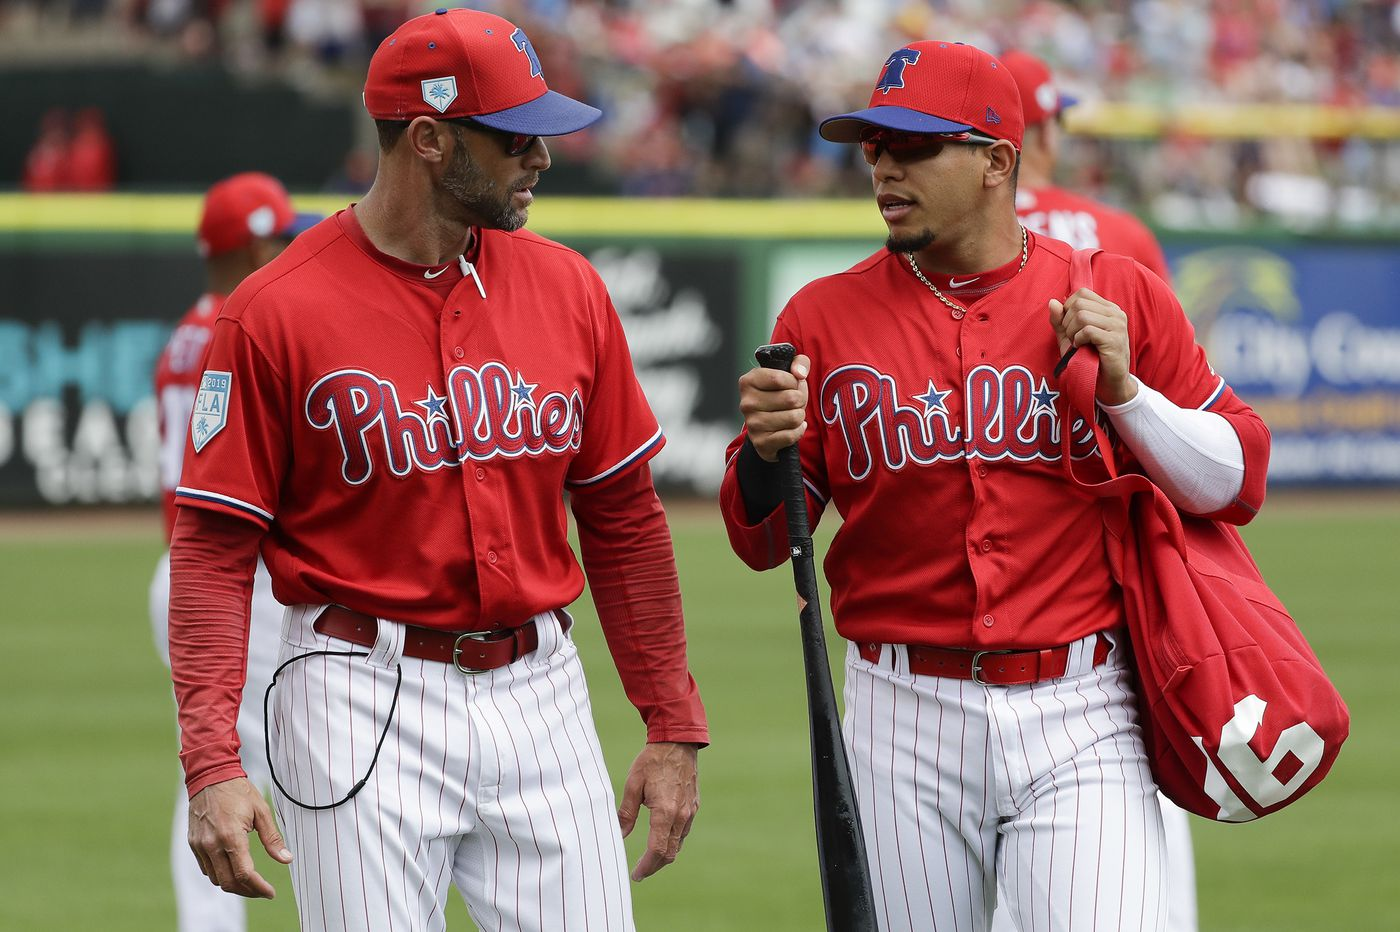 Baseball preview: National League capsules, odds, stats and storylines